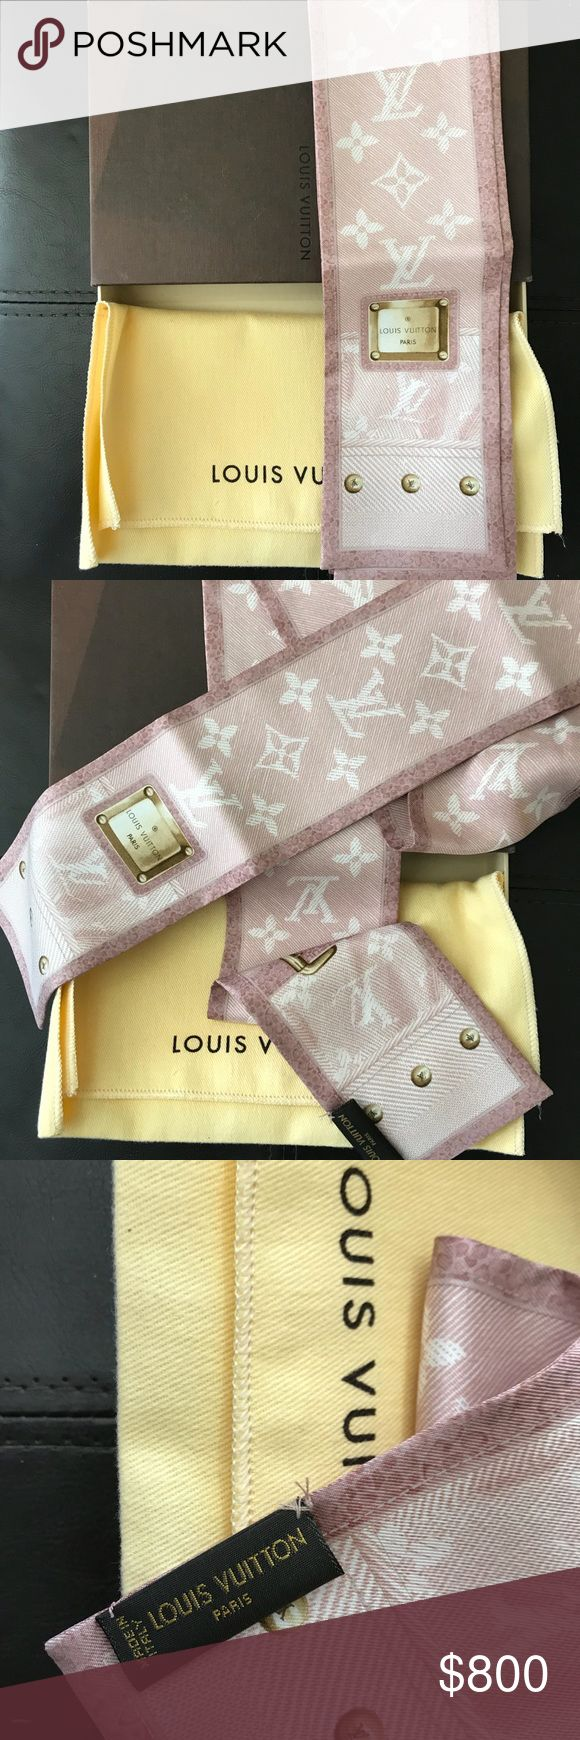 Louis Vuitton silk scarf/ twilly, Box included ((SOLD TO A FRIEND)) Purple LV logo neck scarf, in brand new condition. There is a mark on the top of the box, where it looks slightly faded near the edges. Comes with box and tan bag.   Price is firm due to Posh fees.   Please let me know if you wish to see additional photos. Louis Vuitton Accessories Scarves & Wraps